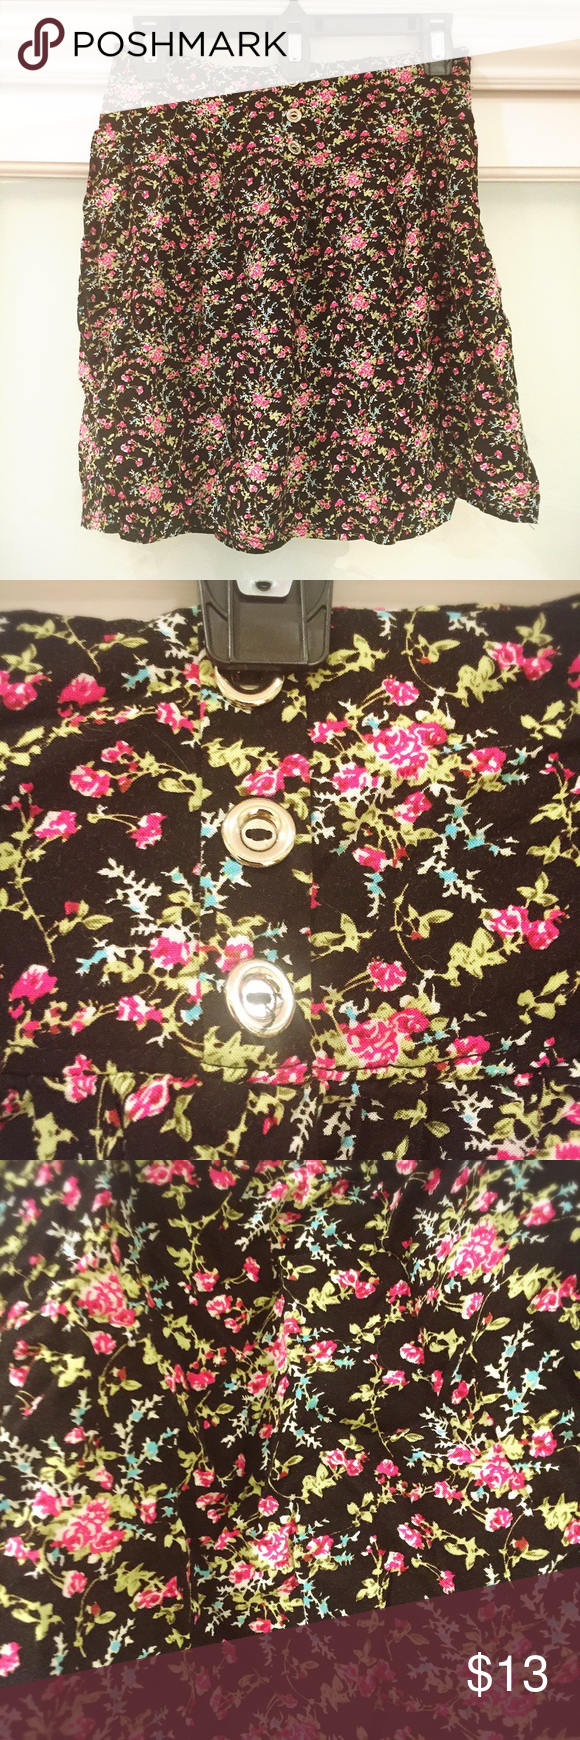 🎾High waist black floral mini skirt🎾 High waist design. Zipper on the side. Unfortunately the size on the label is gone. I'd say it's M. Great condition. Worn once maybe. Skirts A-Line or Full